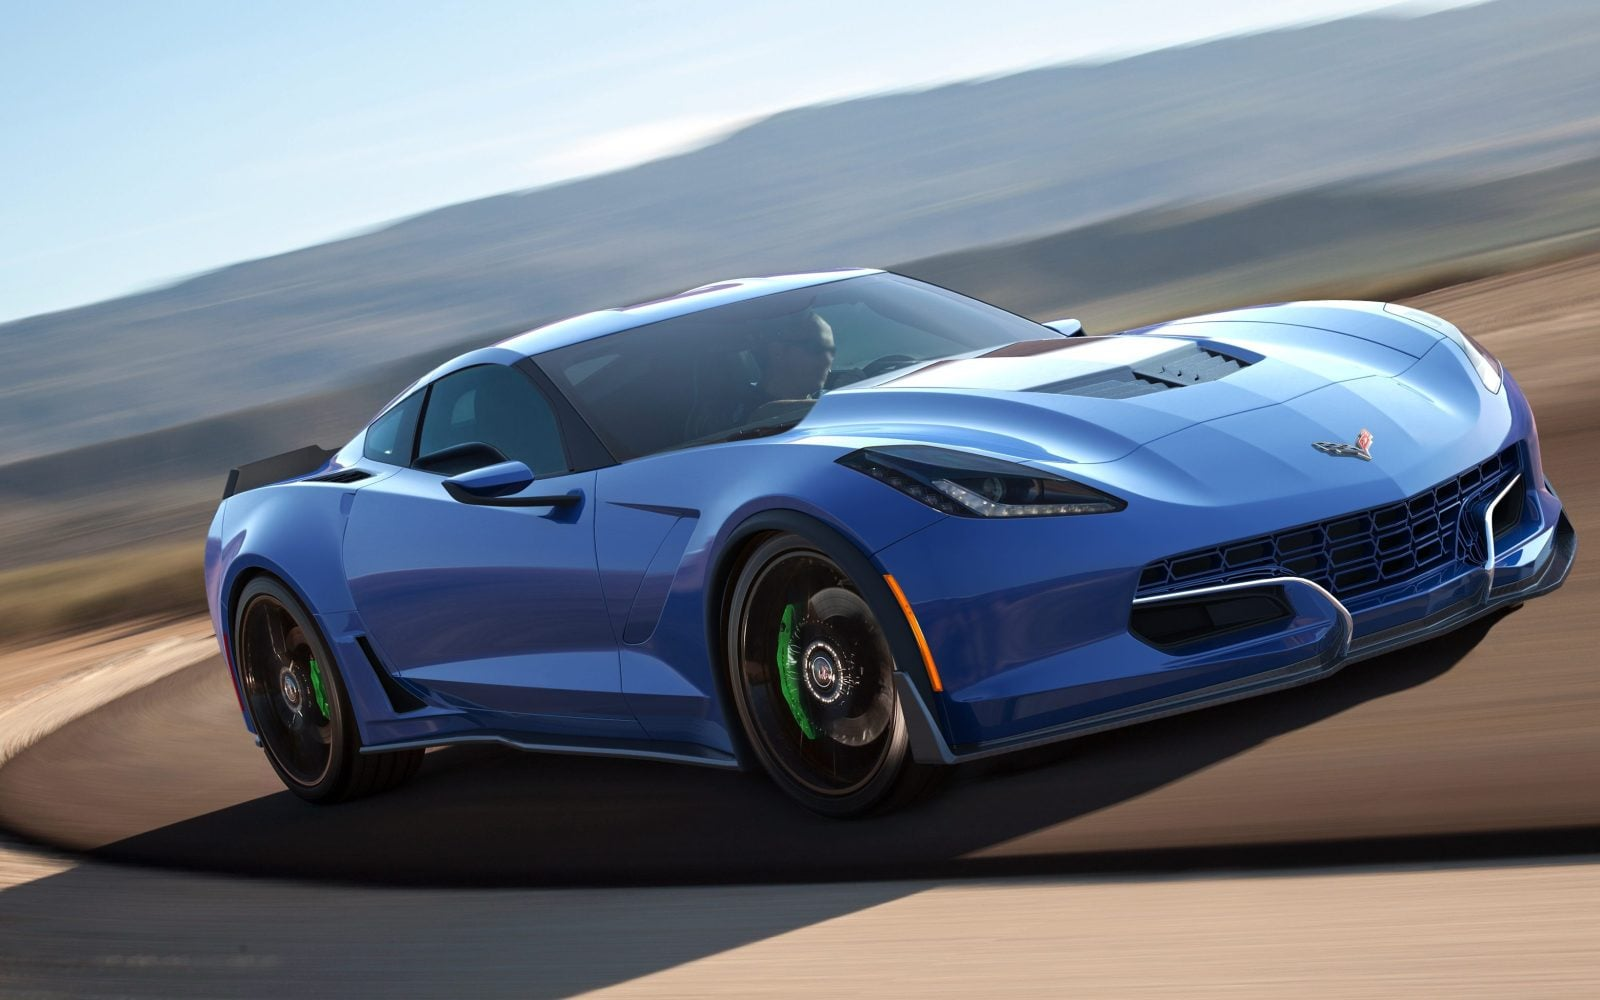 genovation corvette electric car https://huglero.com